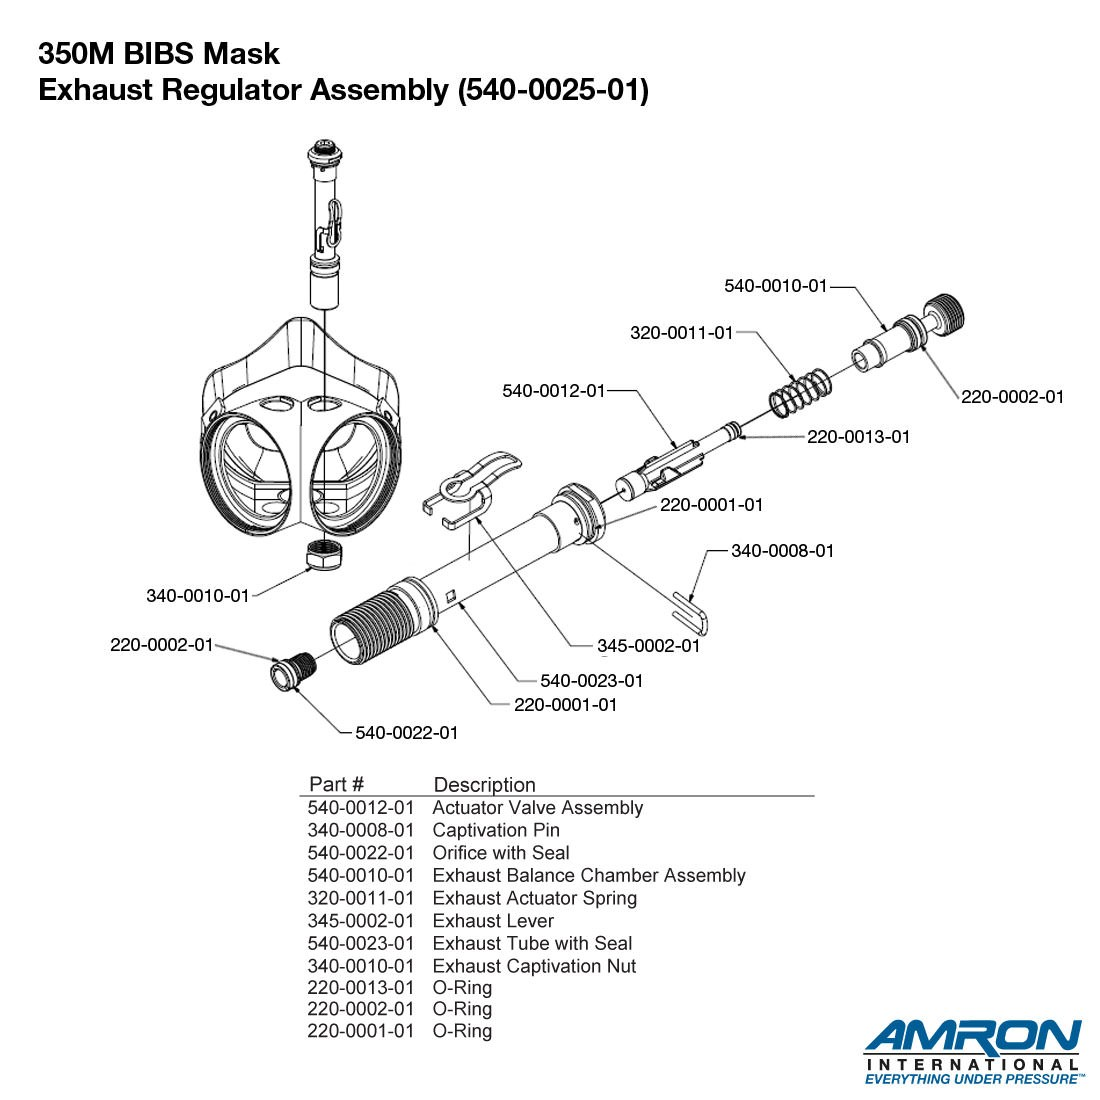 Amron International 350M BIBS Mask - Head Support Breakout Exhaust Assembly Breakout